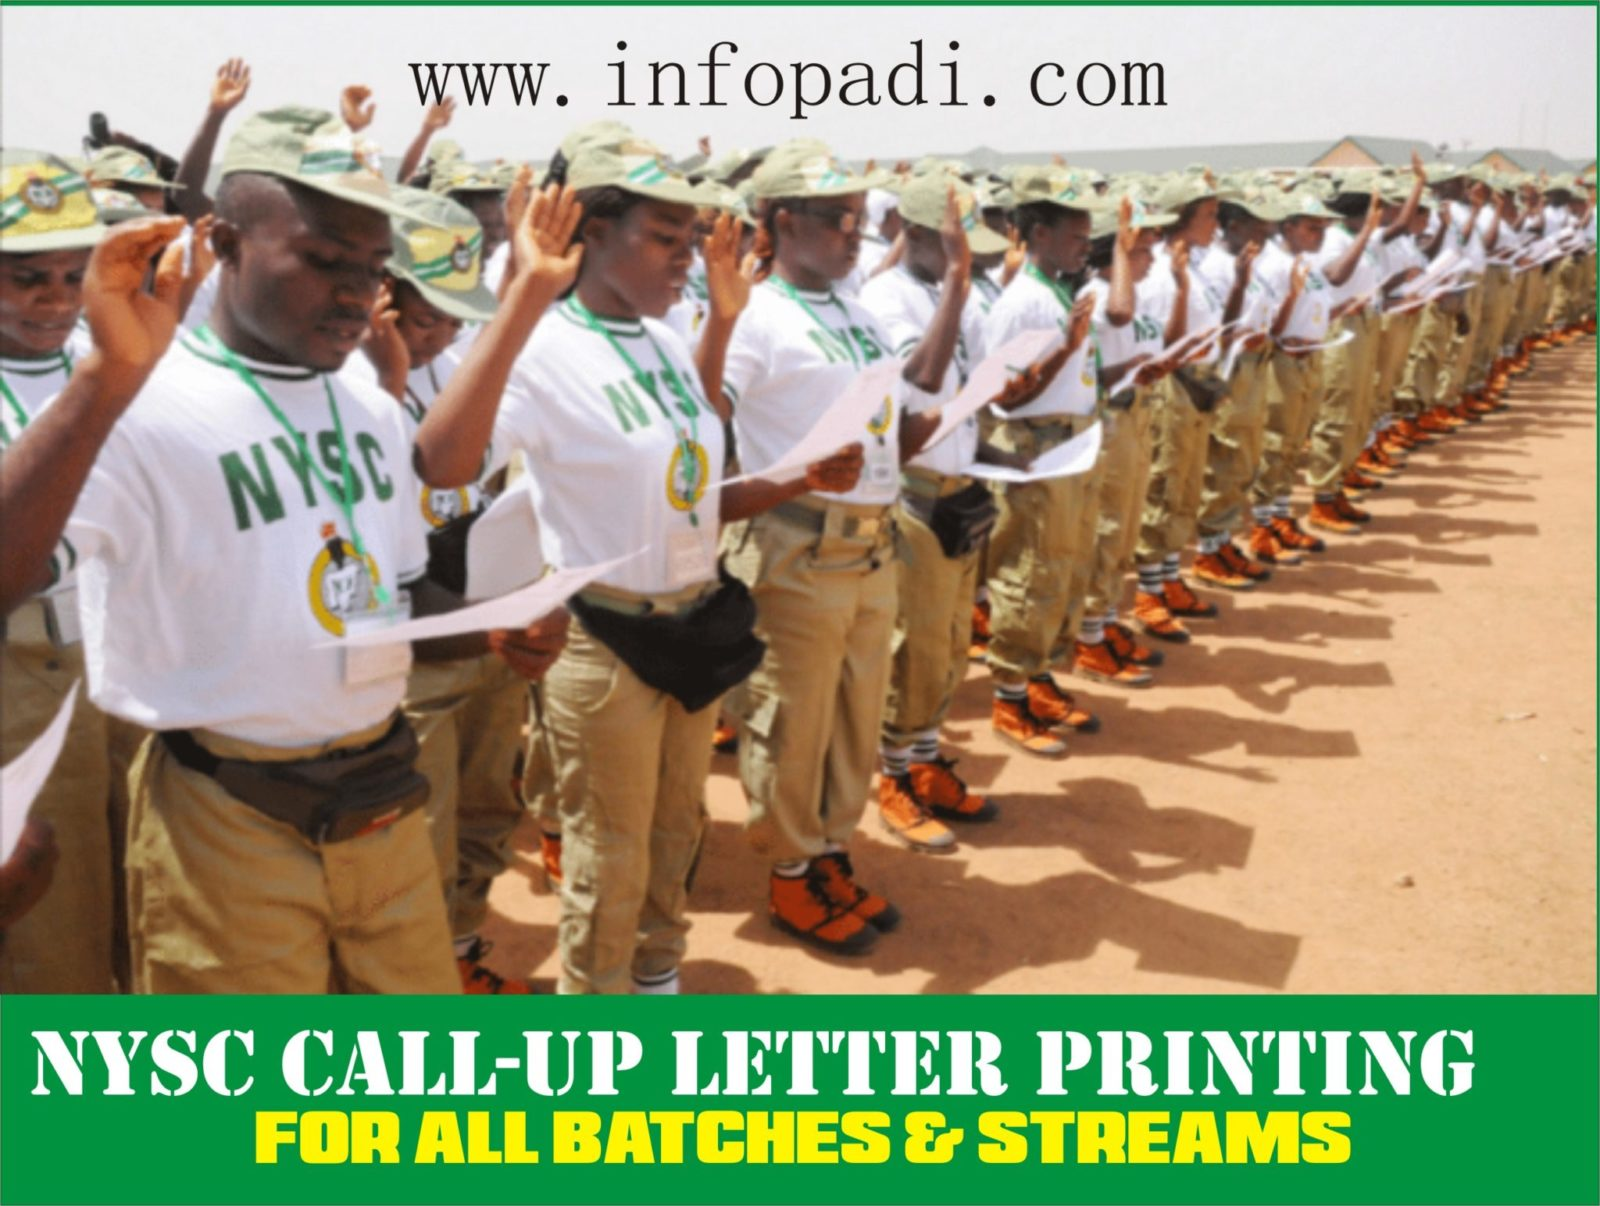 NYSC CALL-UP LETTER PRINTING- Print your 2018 Call-up Letter here and orientation camp guidelines